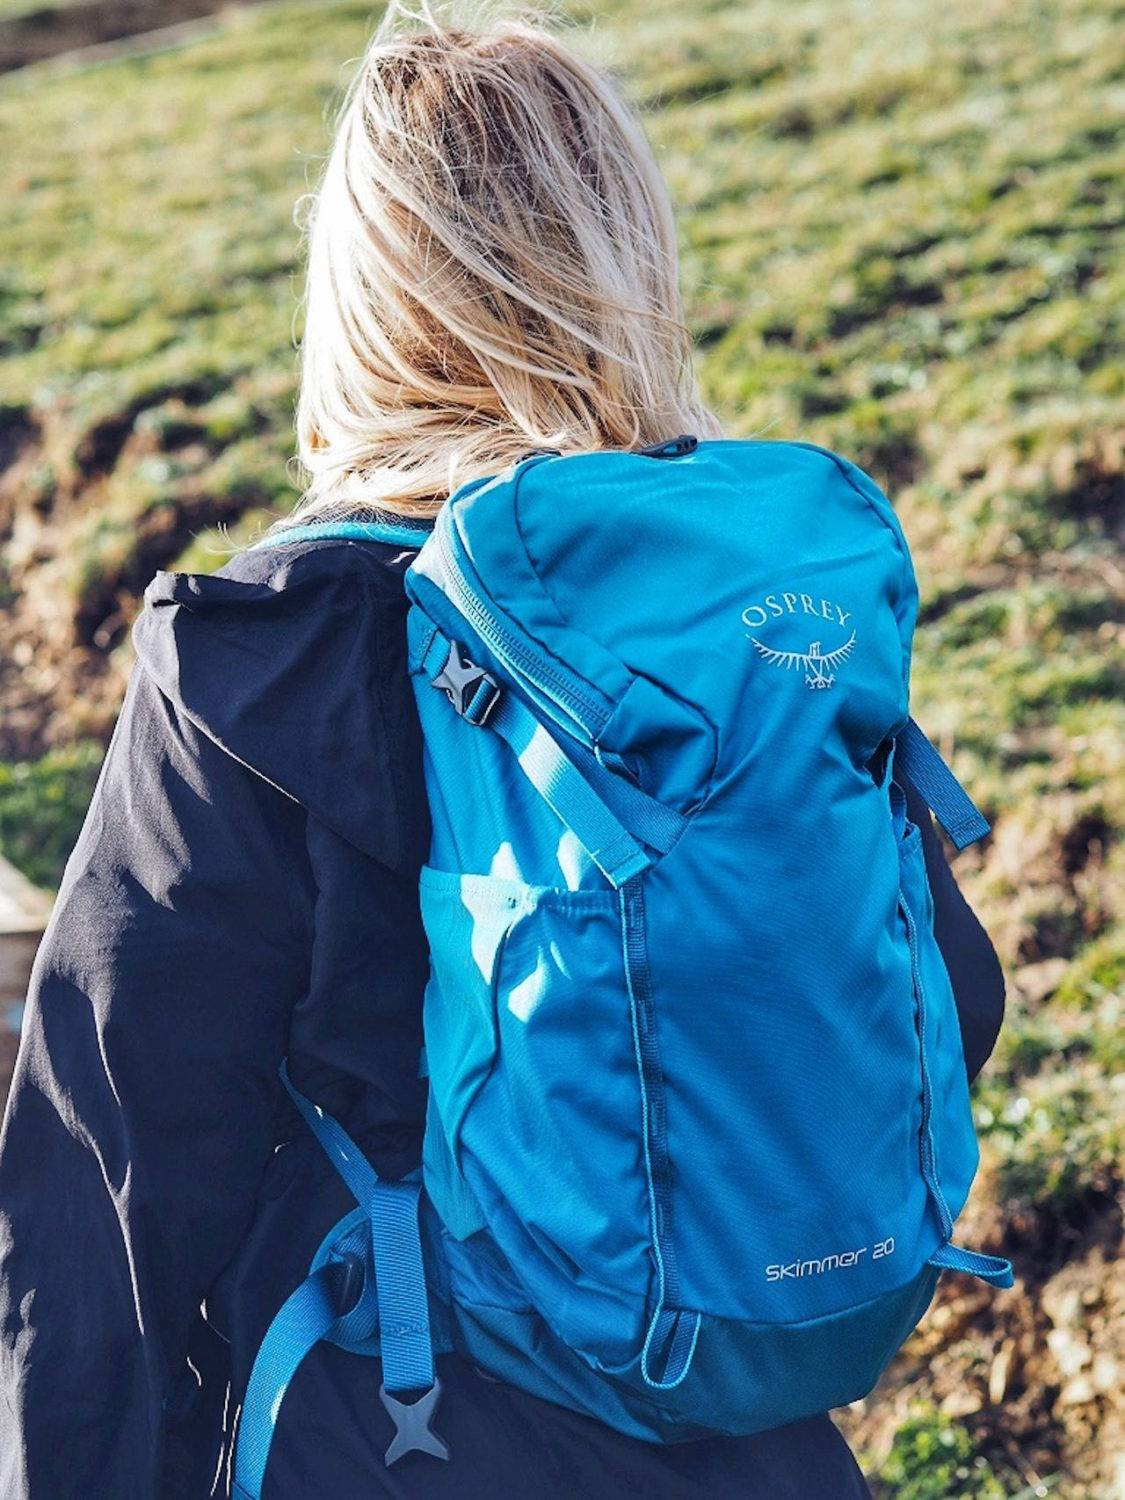 Best small women's backpacks for hiking